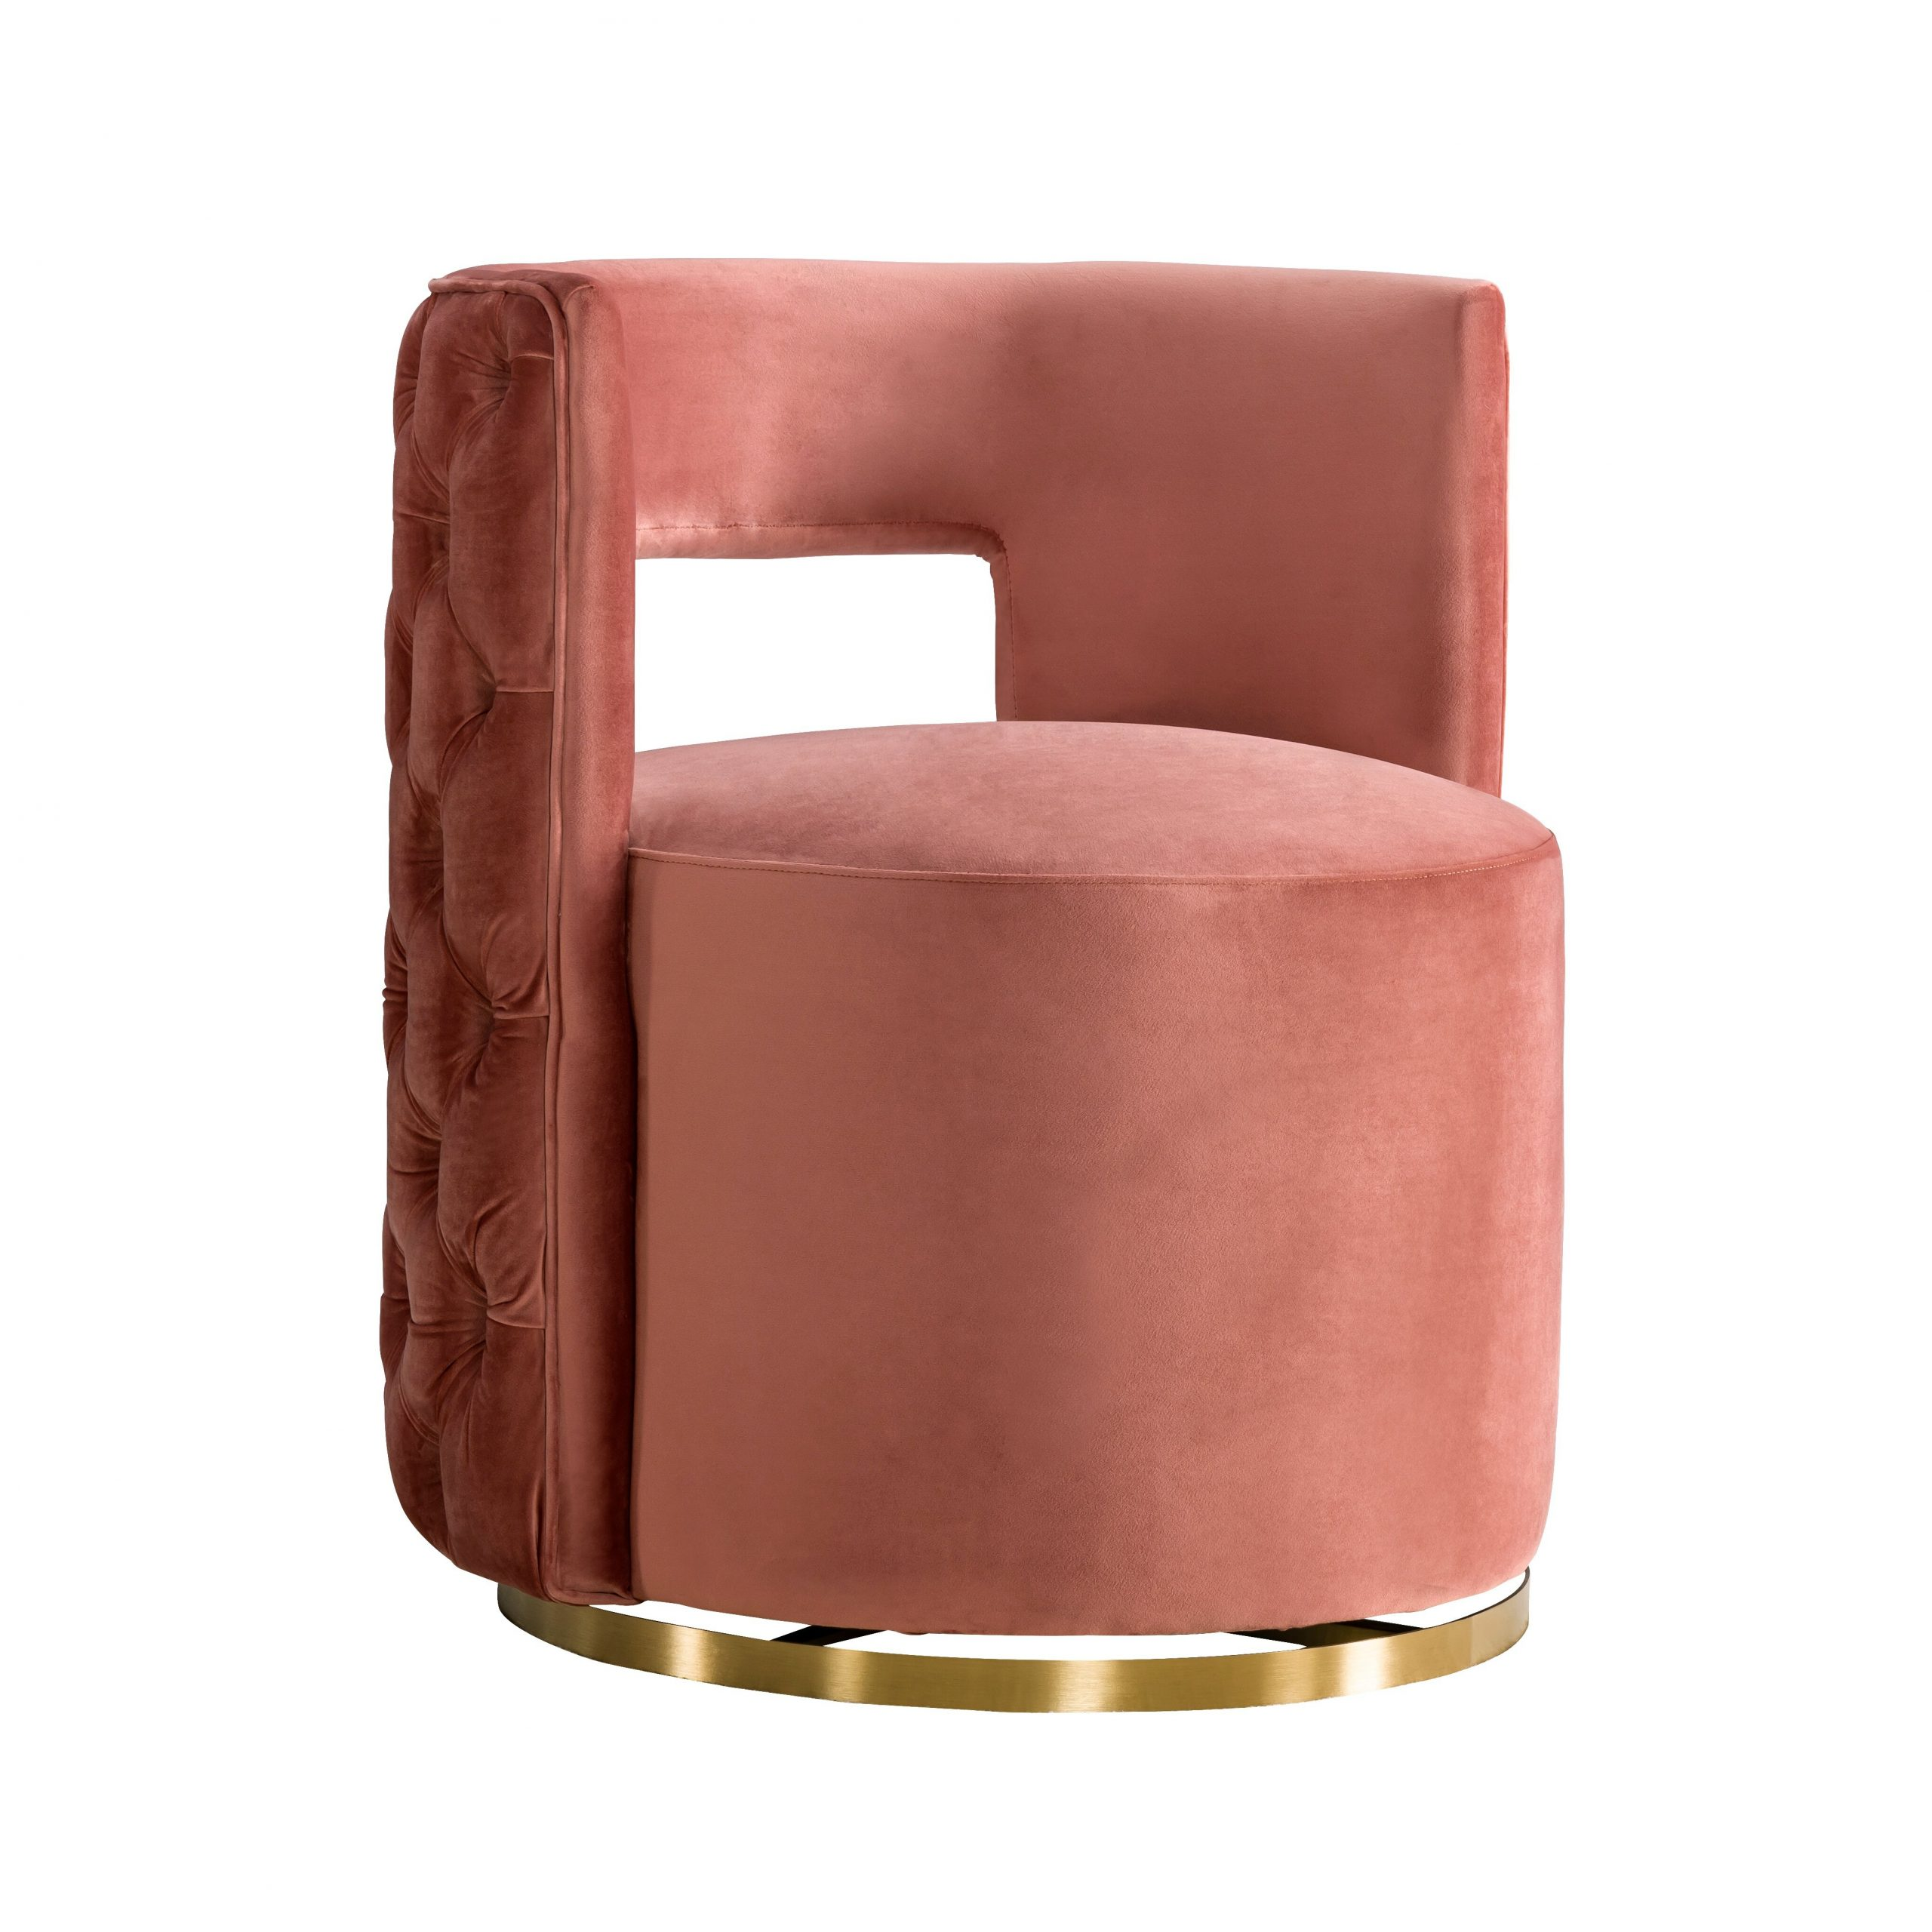 Most Recently Released Navin Barrel Chair Intended For Navin Barrel Chairs (View 2 of 20)